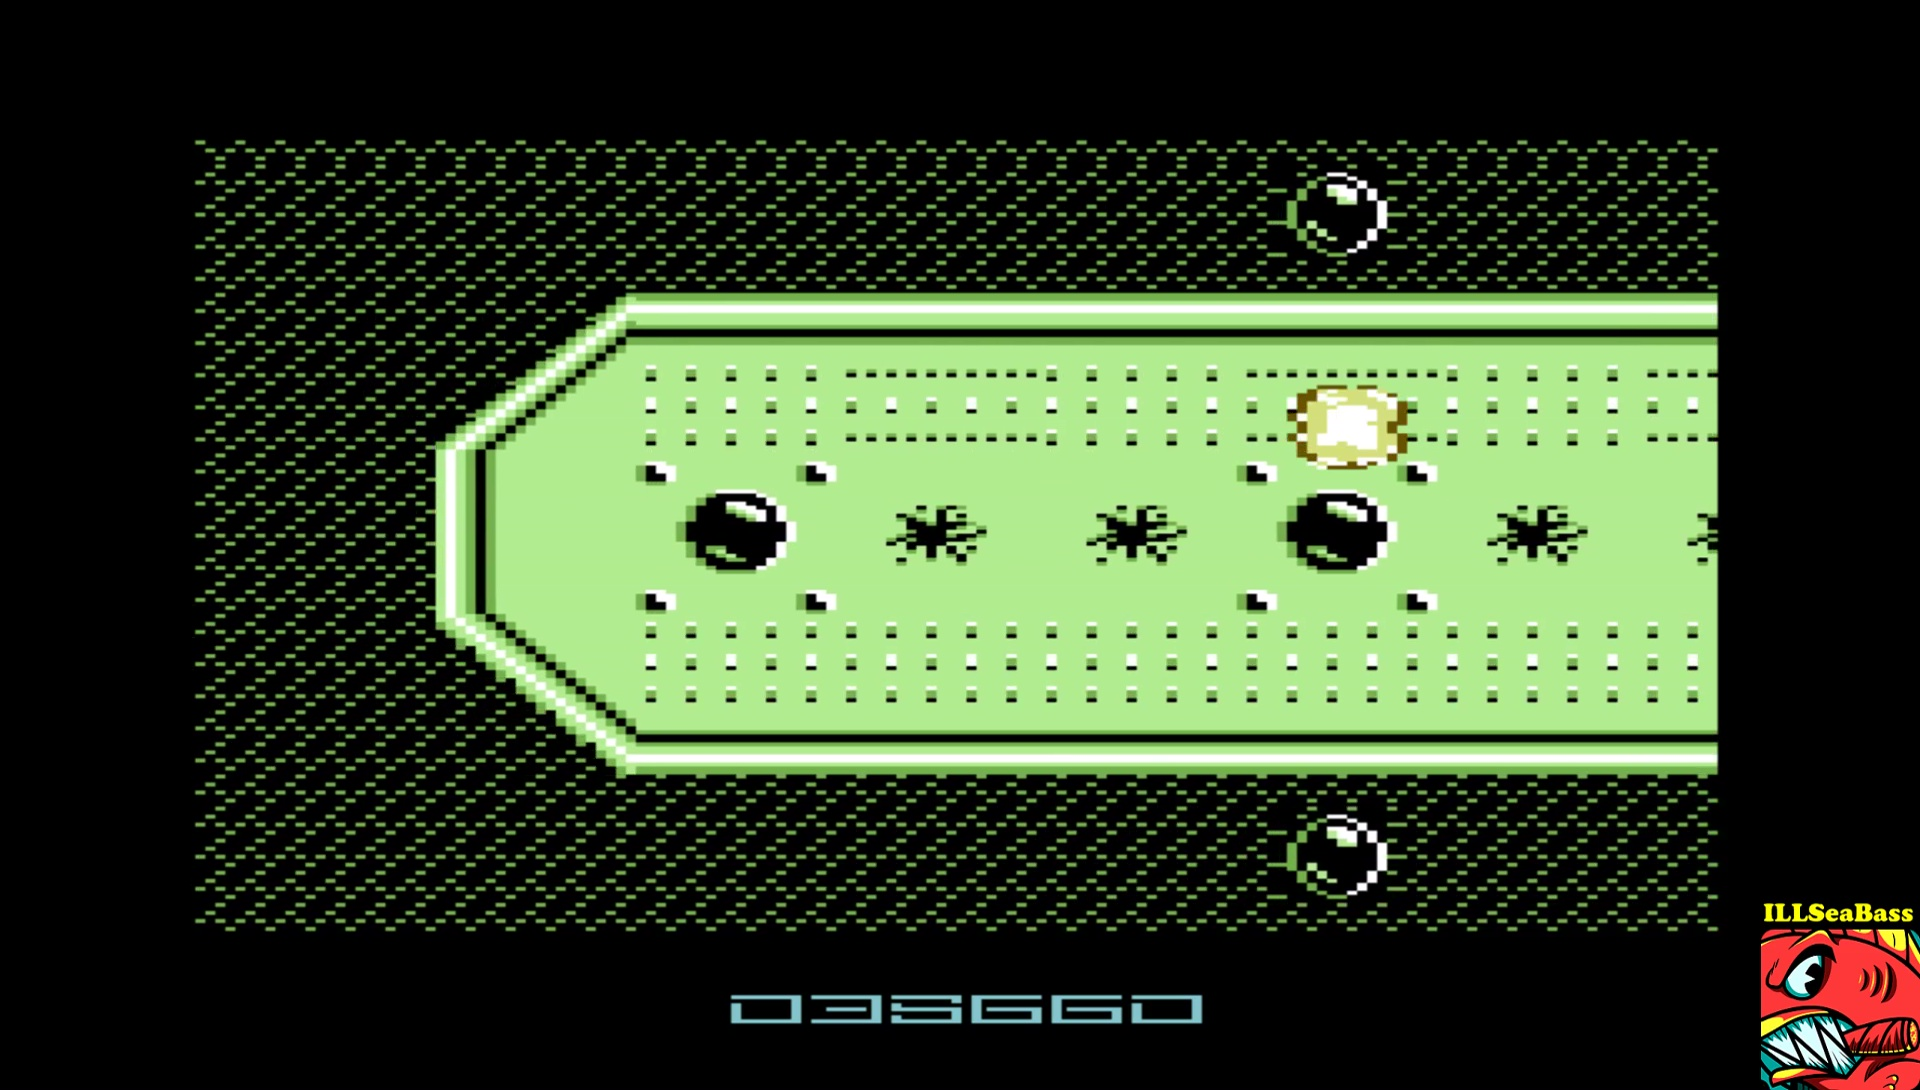 ILLSeaBass: Delta Run (Commodore 64 Emulated) 35,660 points on 2017-05-24 21:08:45